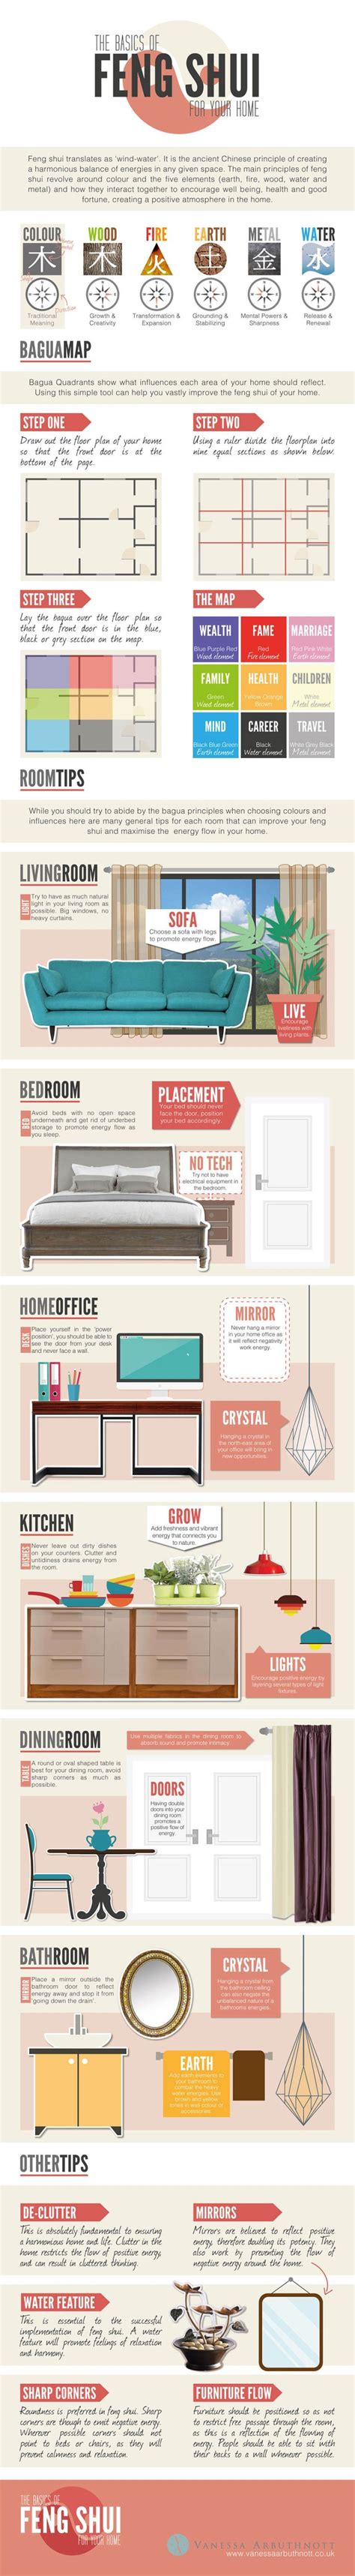 feng shui home decor infographic your basic guide to feng shui for the home